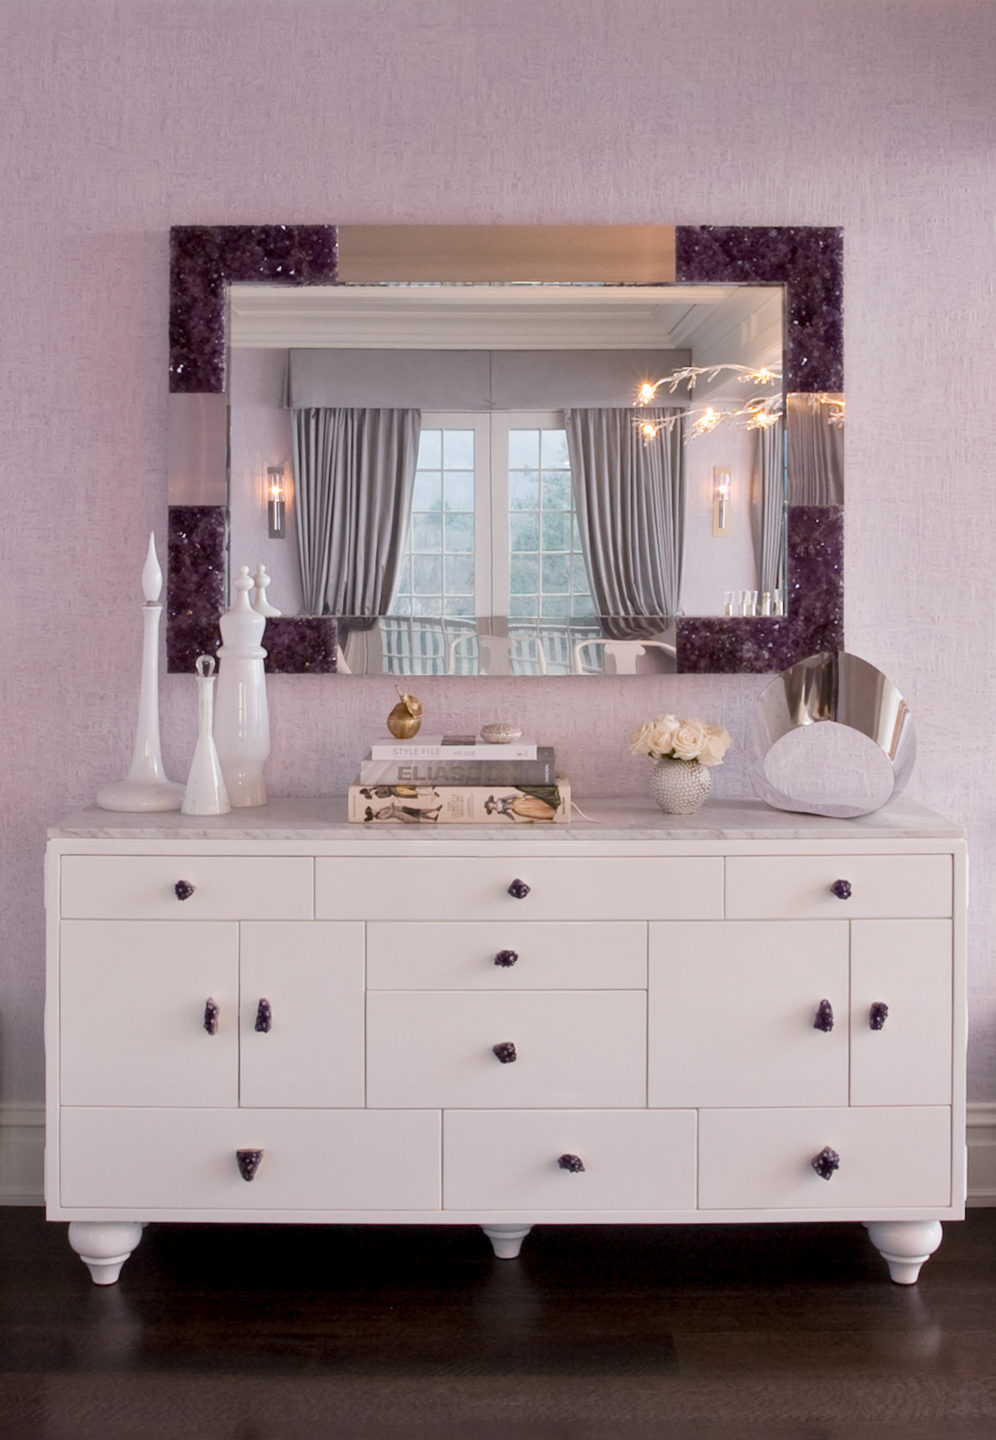 COCO-dresser-2-nicole-fuller-product-information